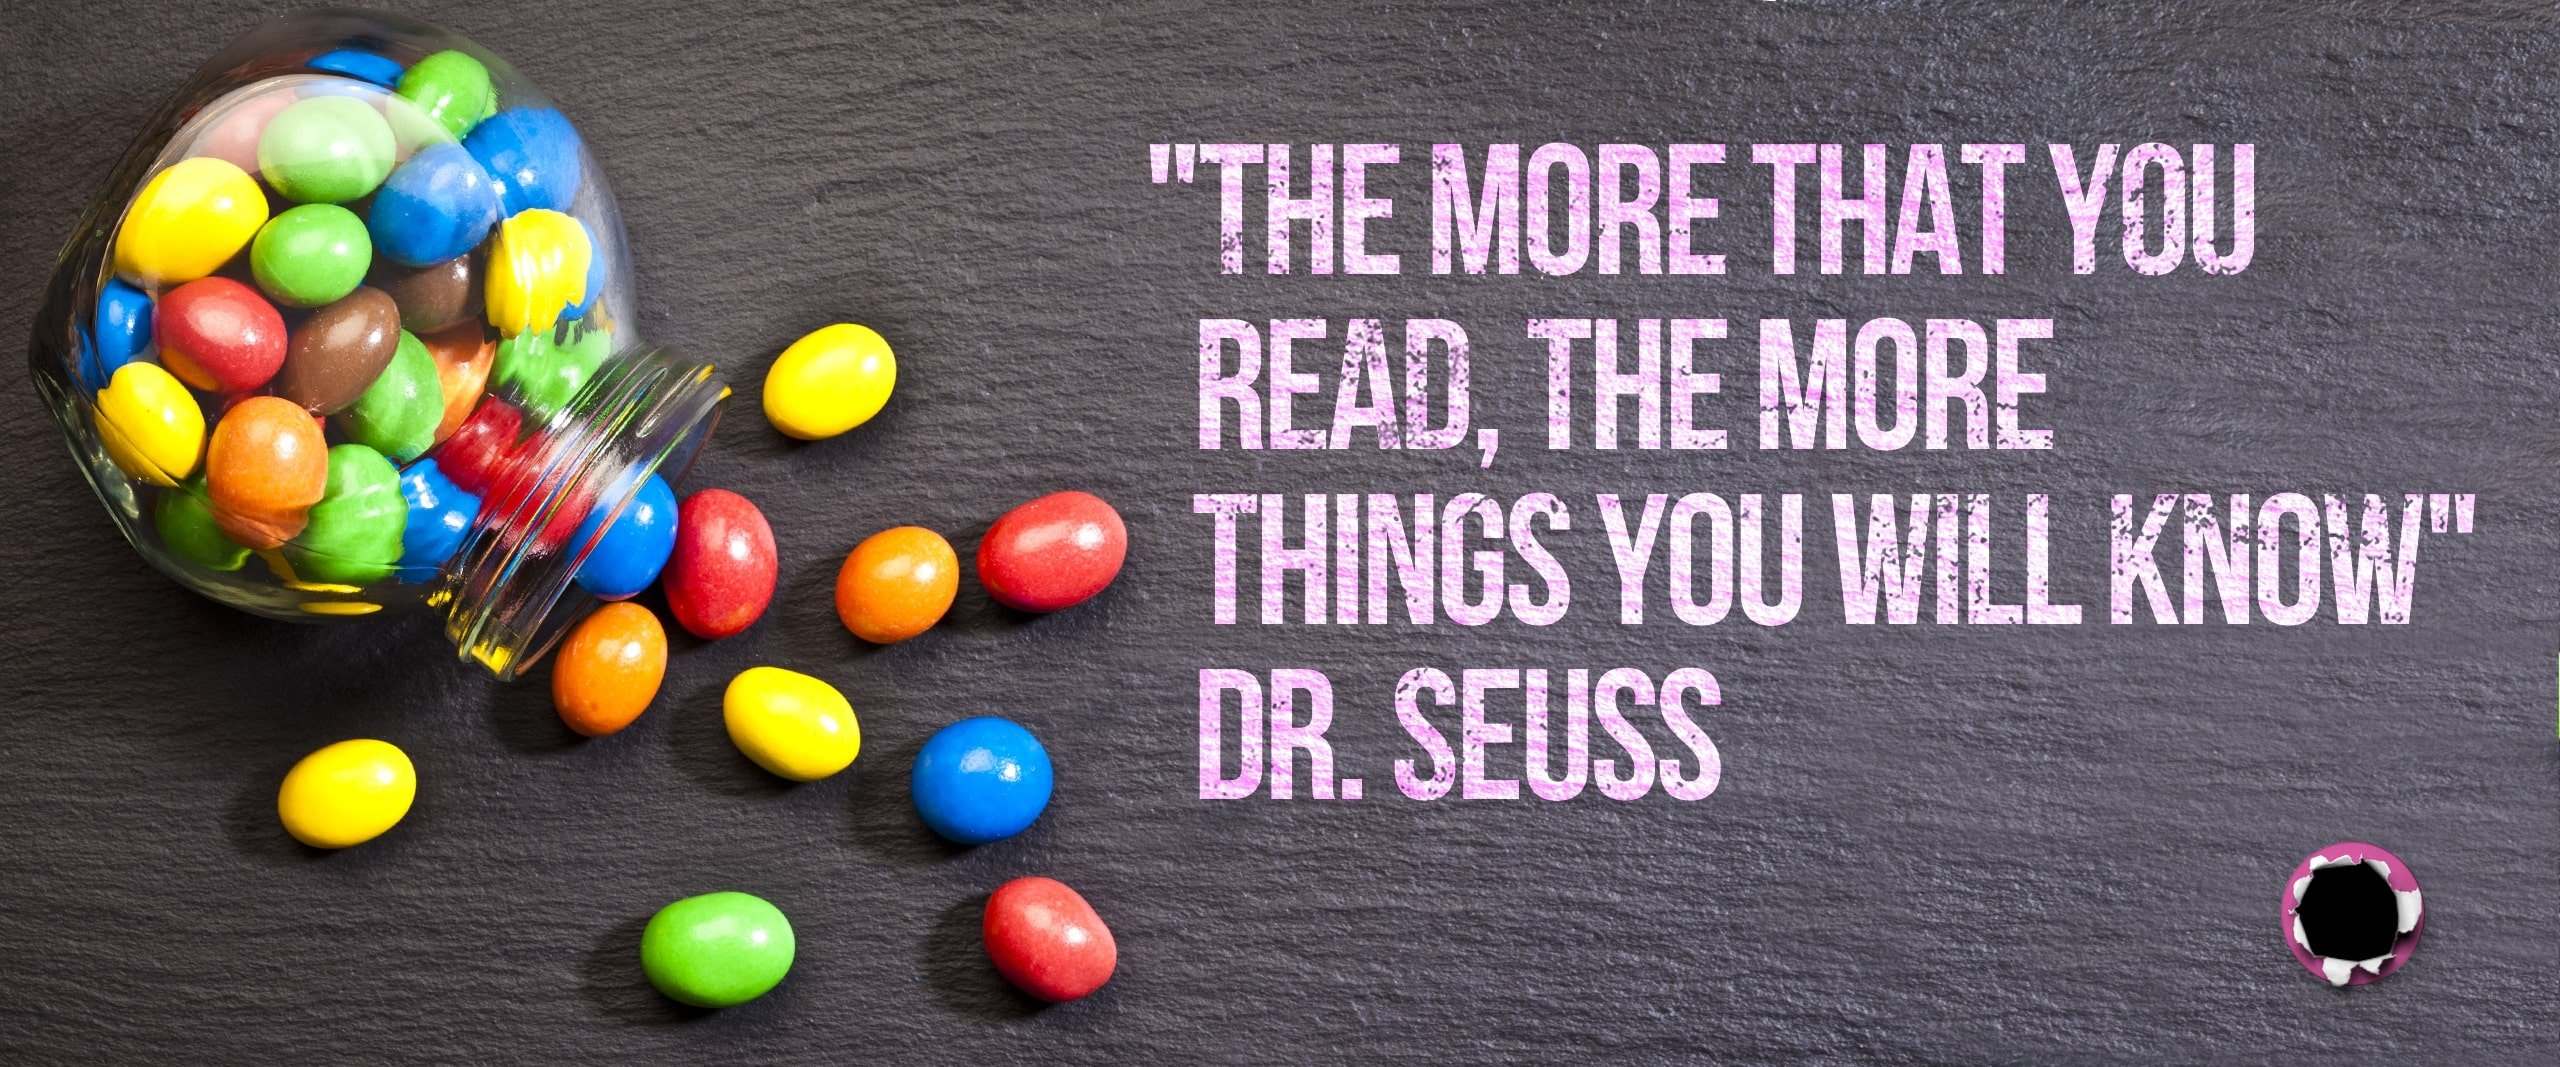 The more that you read, the more things you will know. Sugar Bullet Marketing Blog.